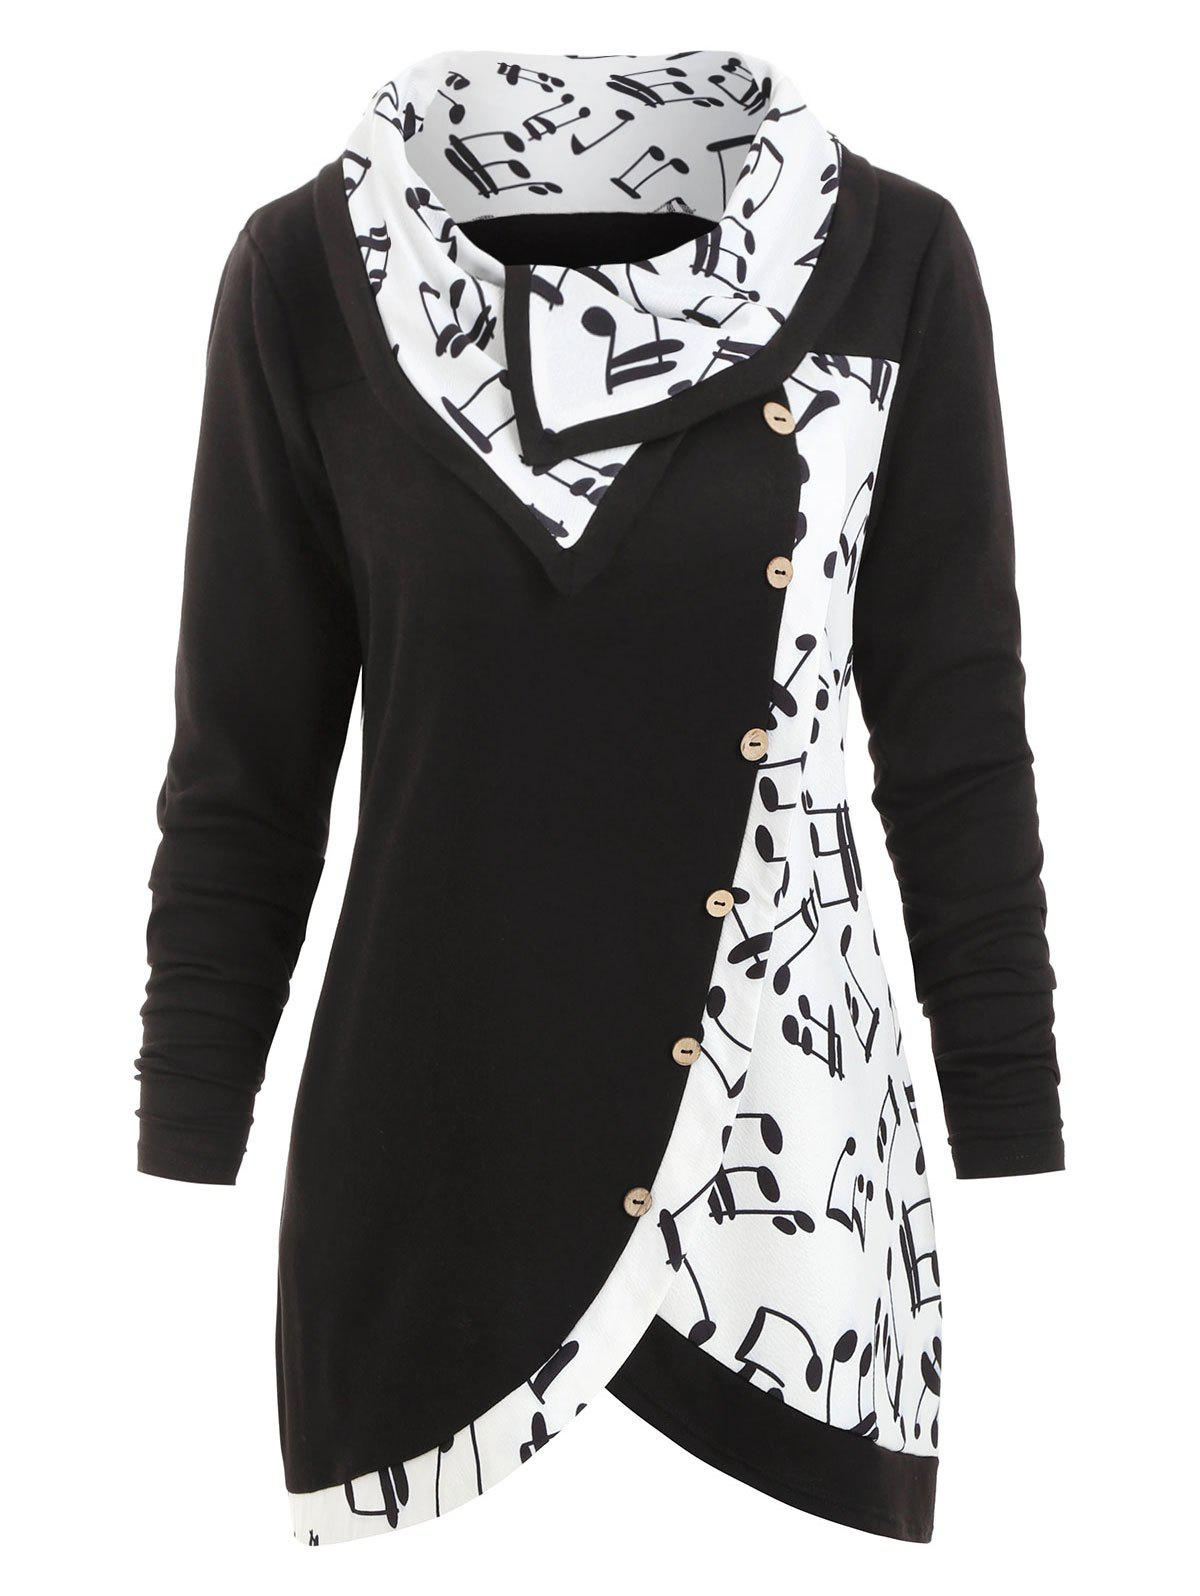 Plus Size Cowl Neck Musical Notes Print Sweatshirt - BLACK 4X